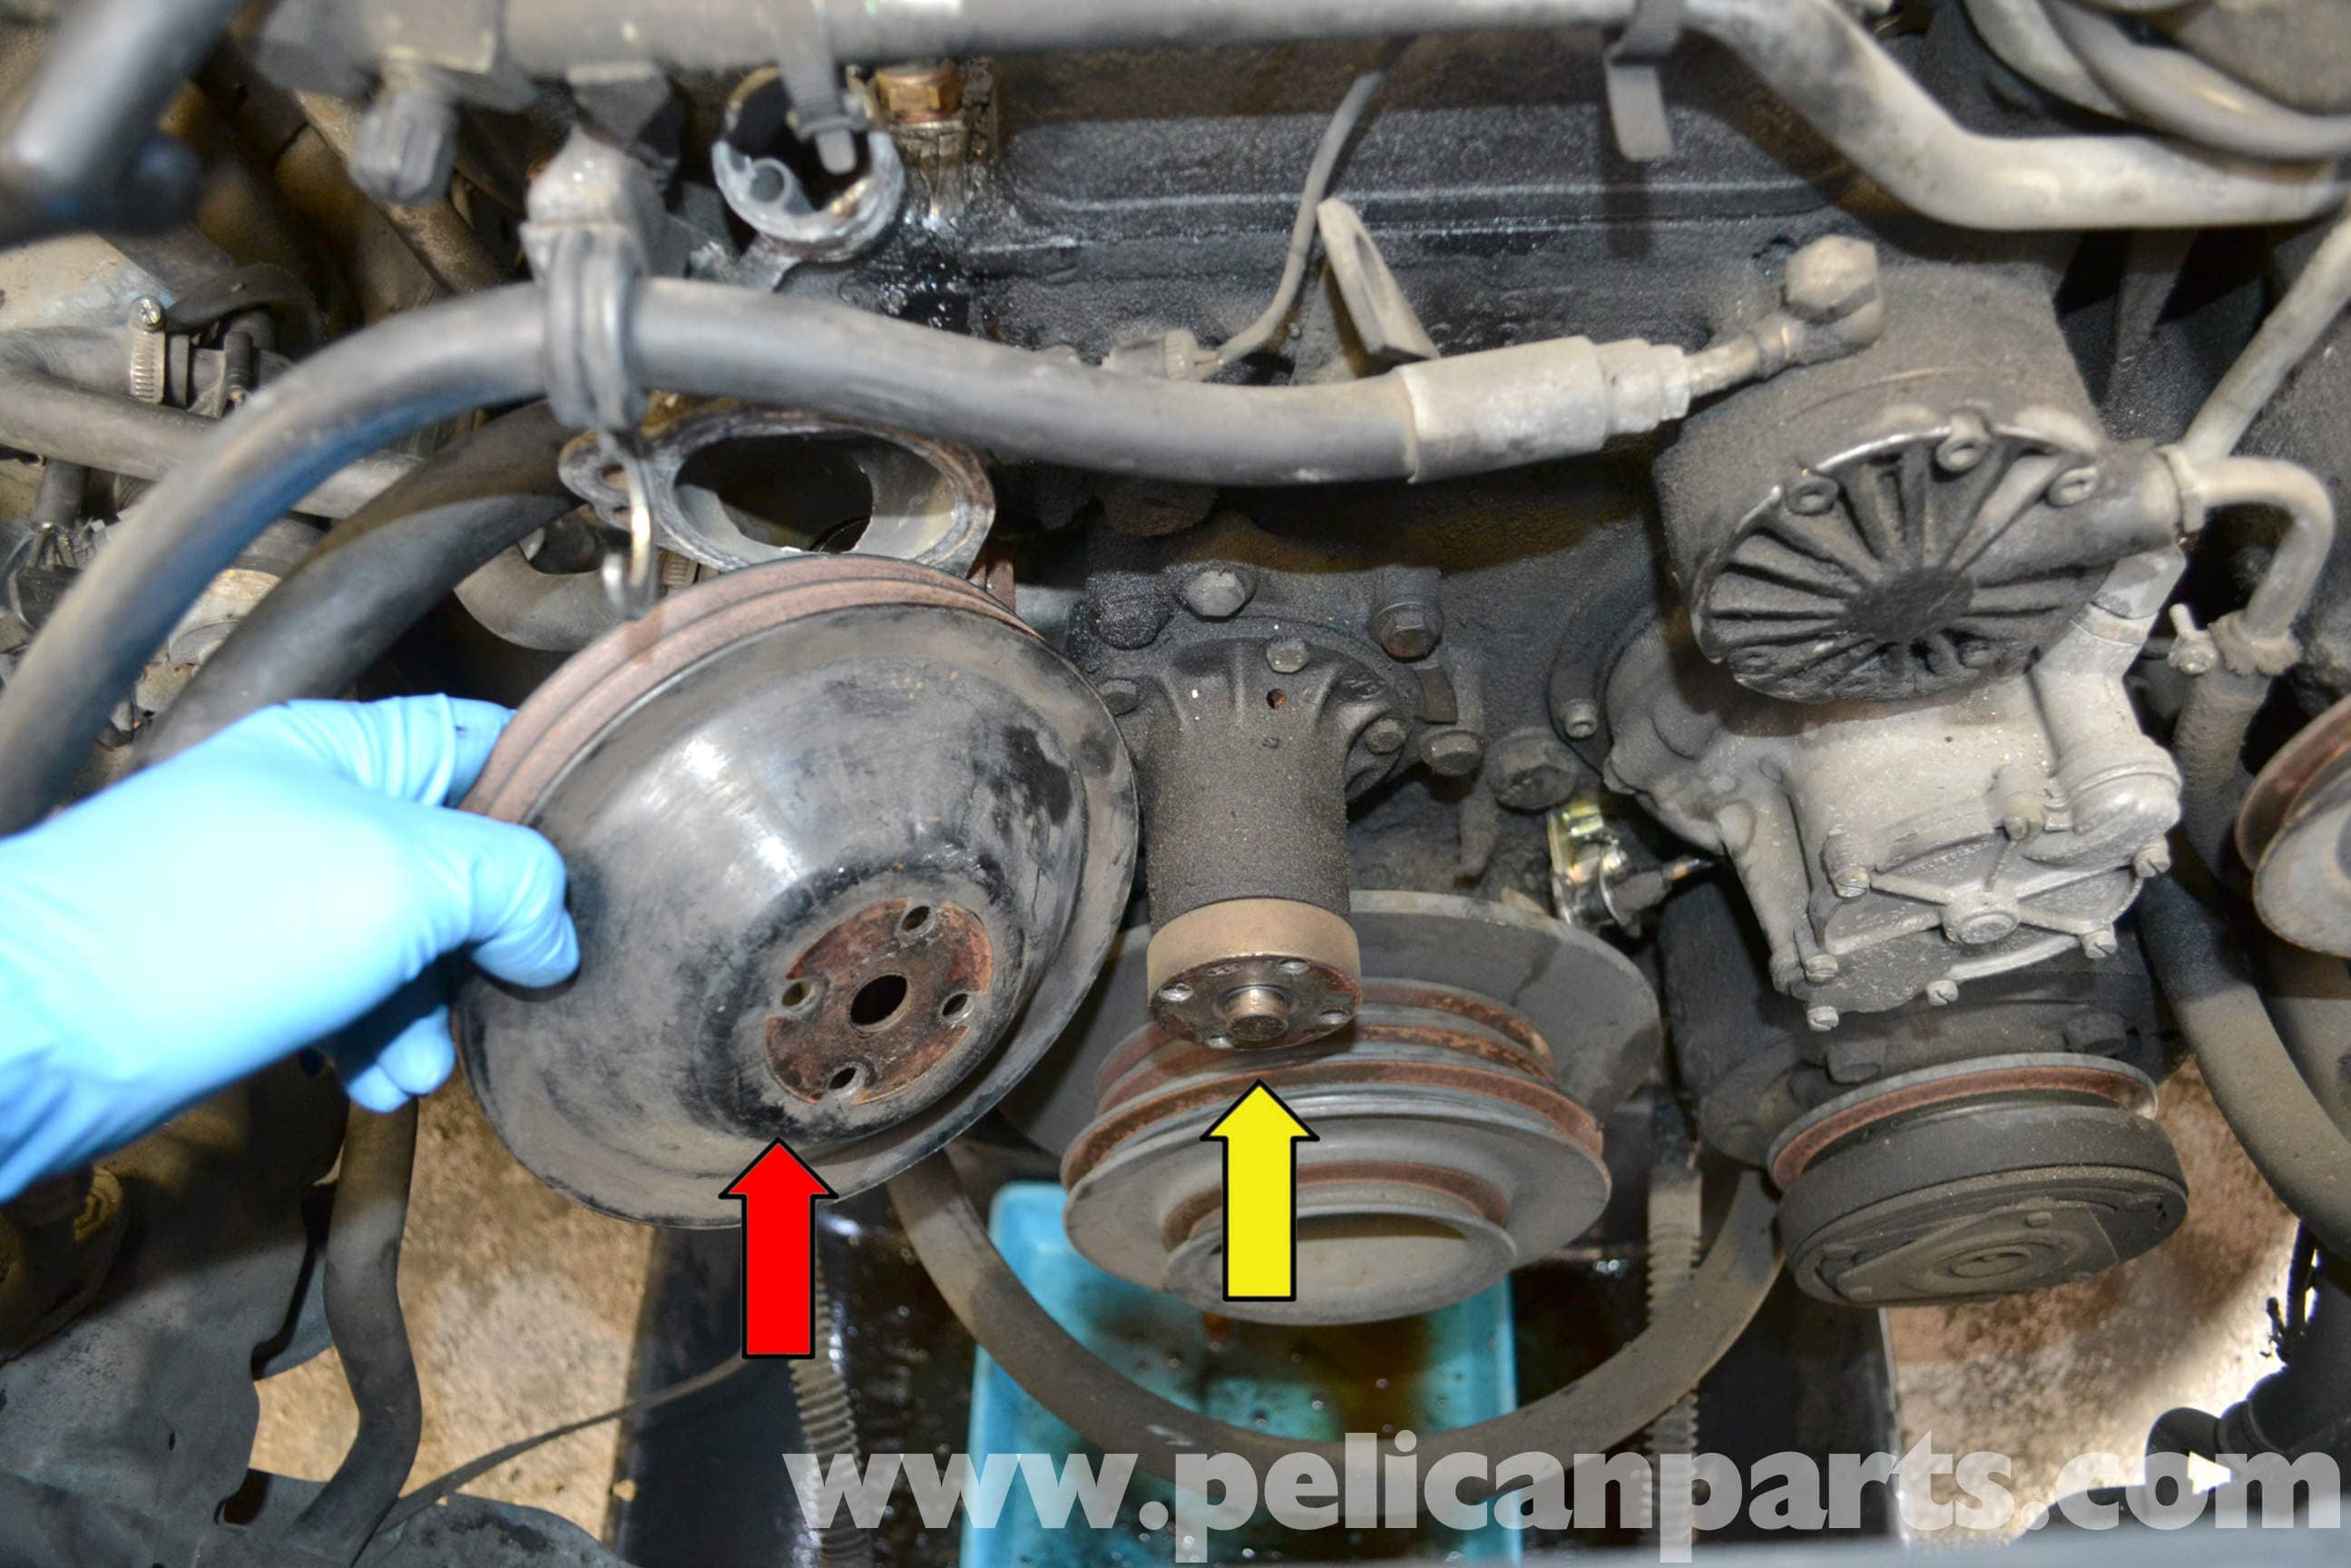 Mercedes-Benz W123 Water Pump Replacement | 300TD 1977-1985